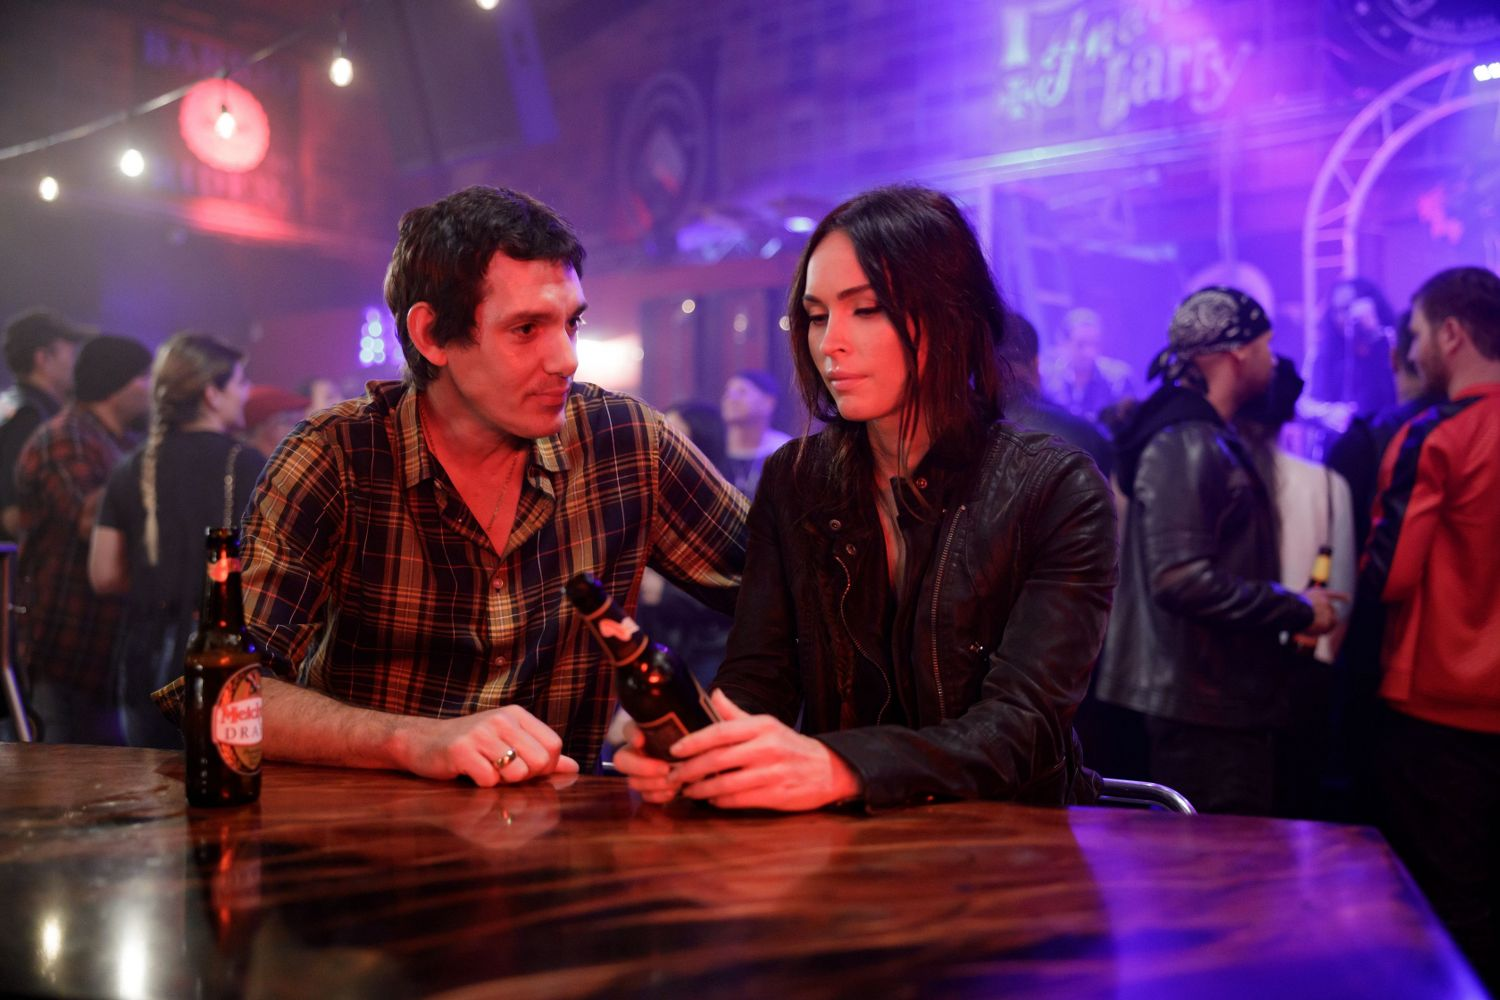 Lukas Haas and Megan Fox in MIDNIGHT IN THE SWITCHGRASS (Lionsgate UK)